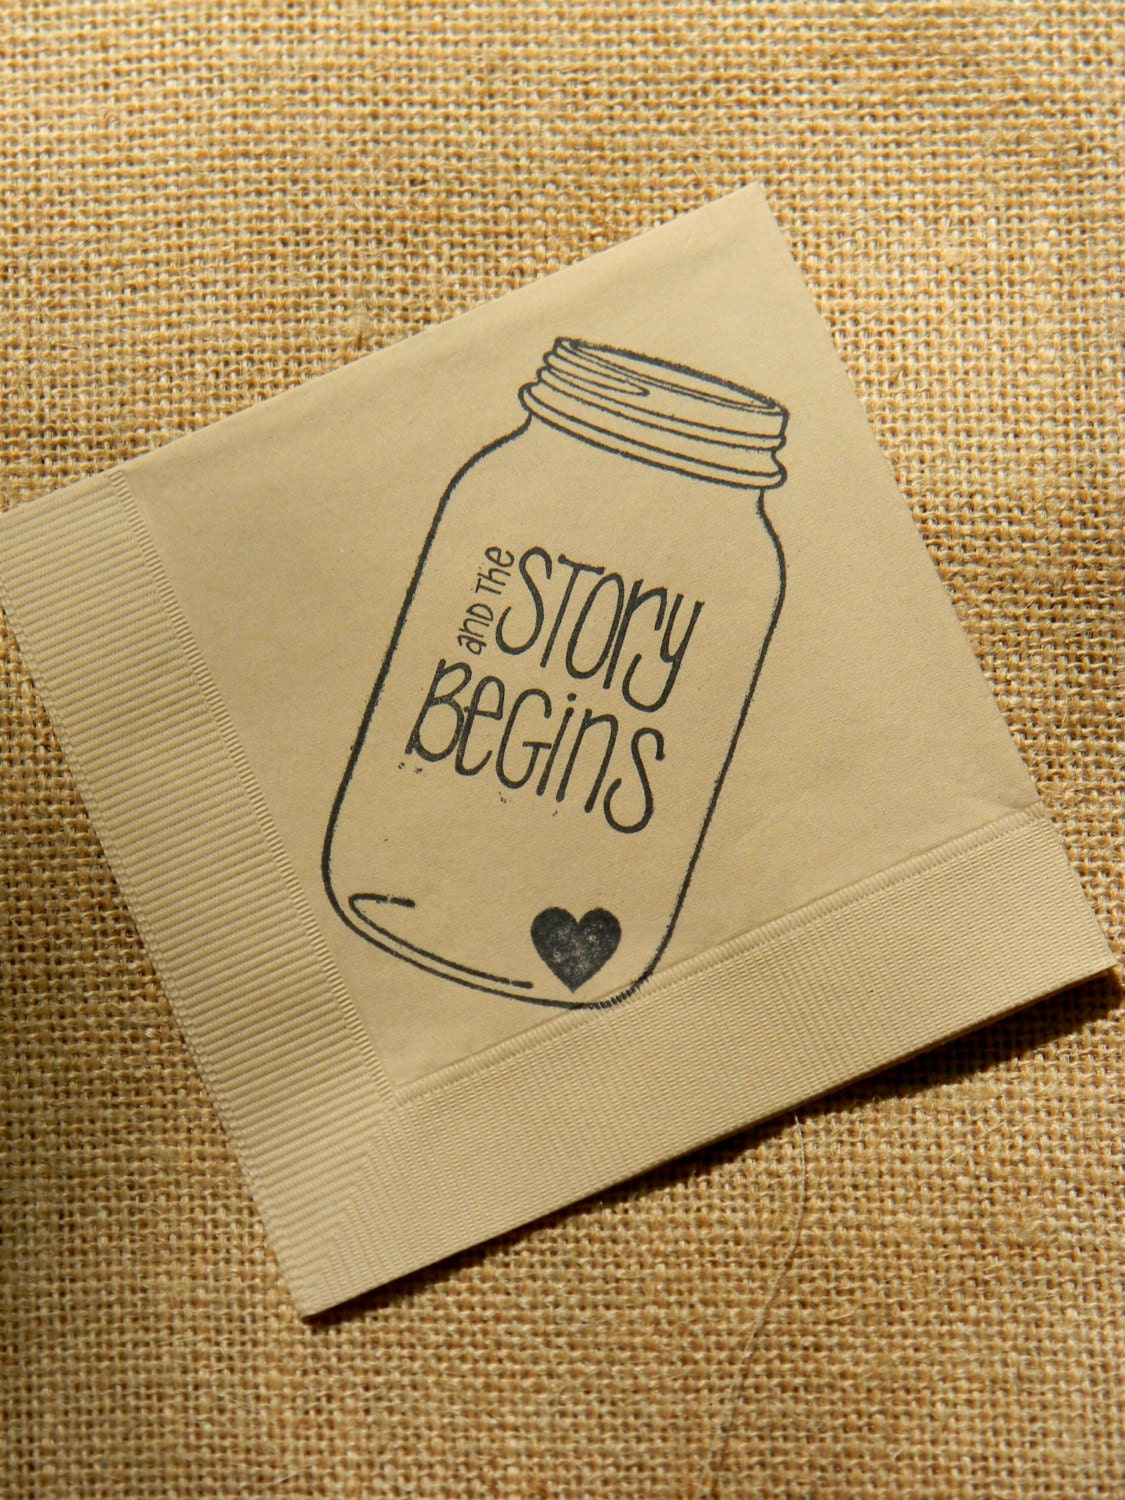 Wedding Personalized Napkins rustic light burlap the story begins mason jar napkins wedding